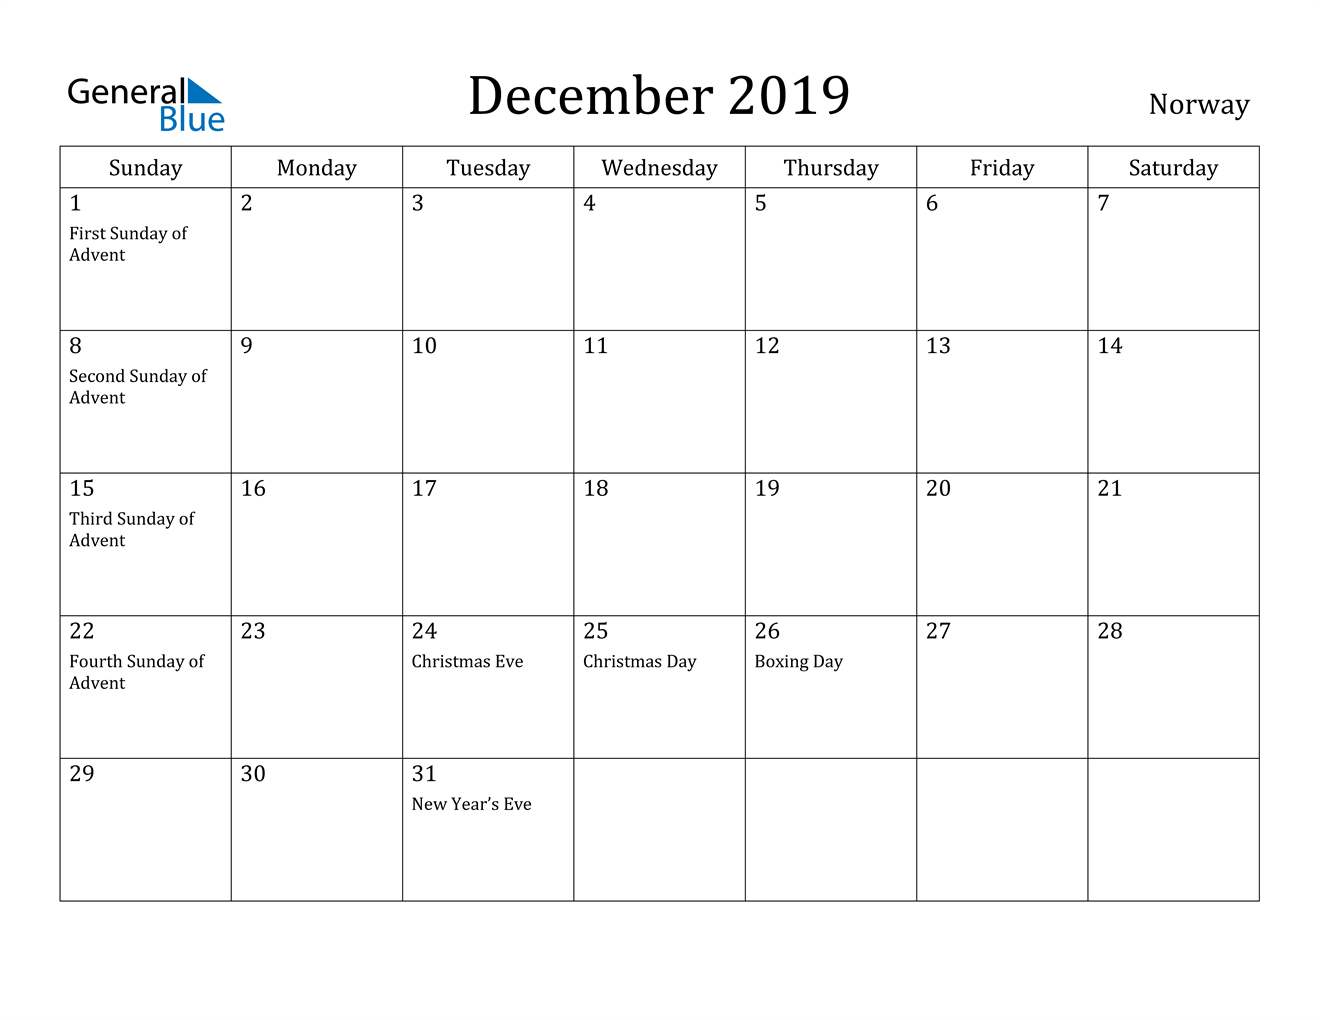 Image of December 2019 Norway Calendar with Holidays Calendar